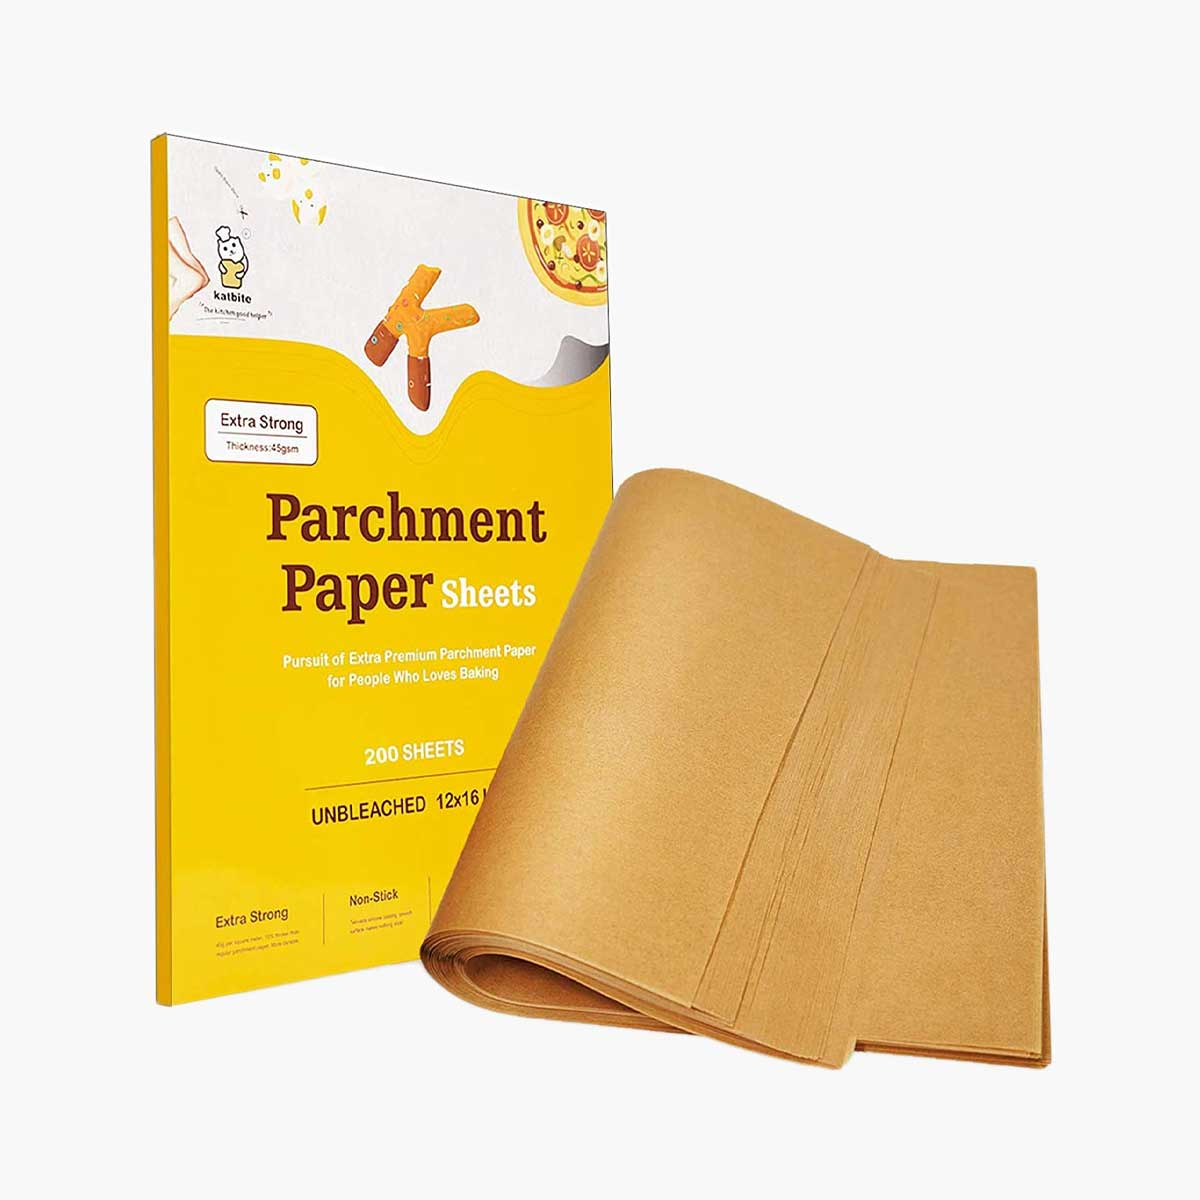 Heavy Duty Unbleached Parchment Paper Sheets